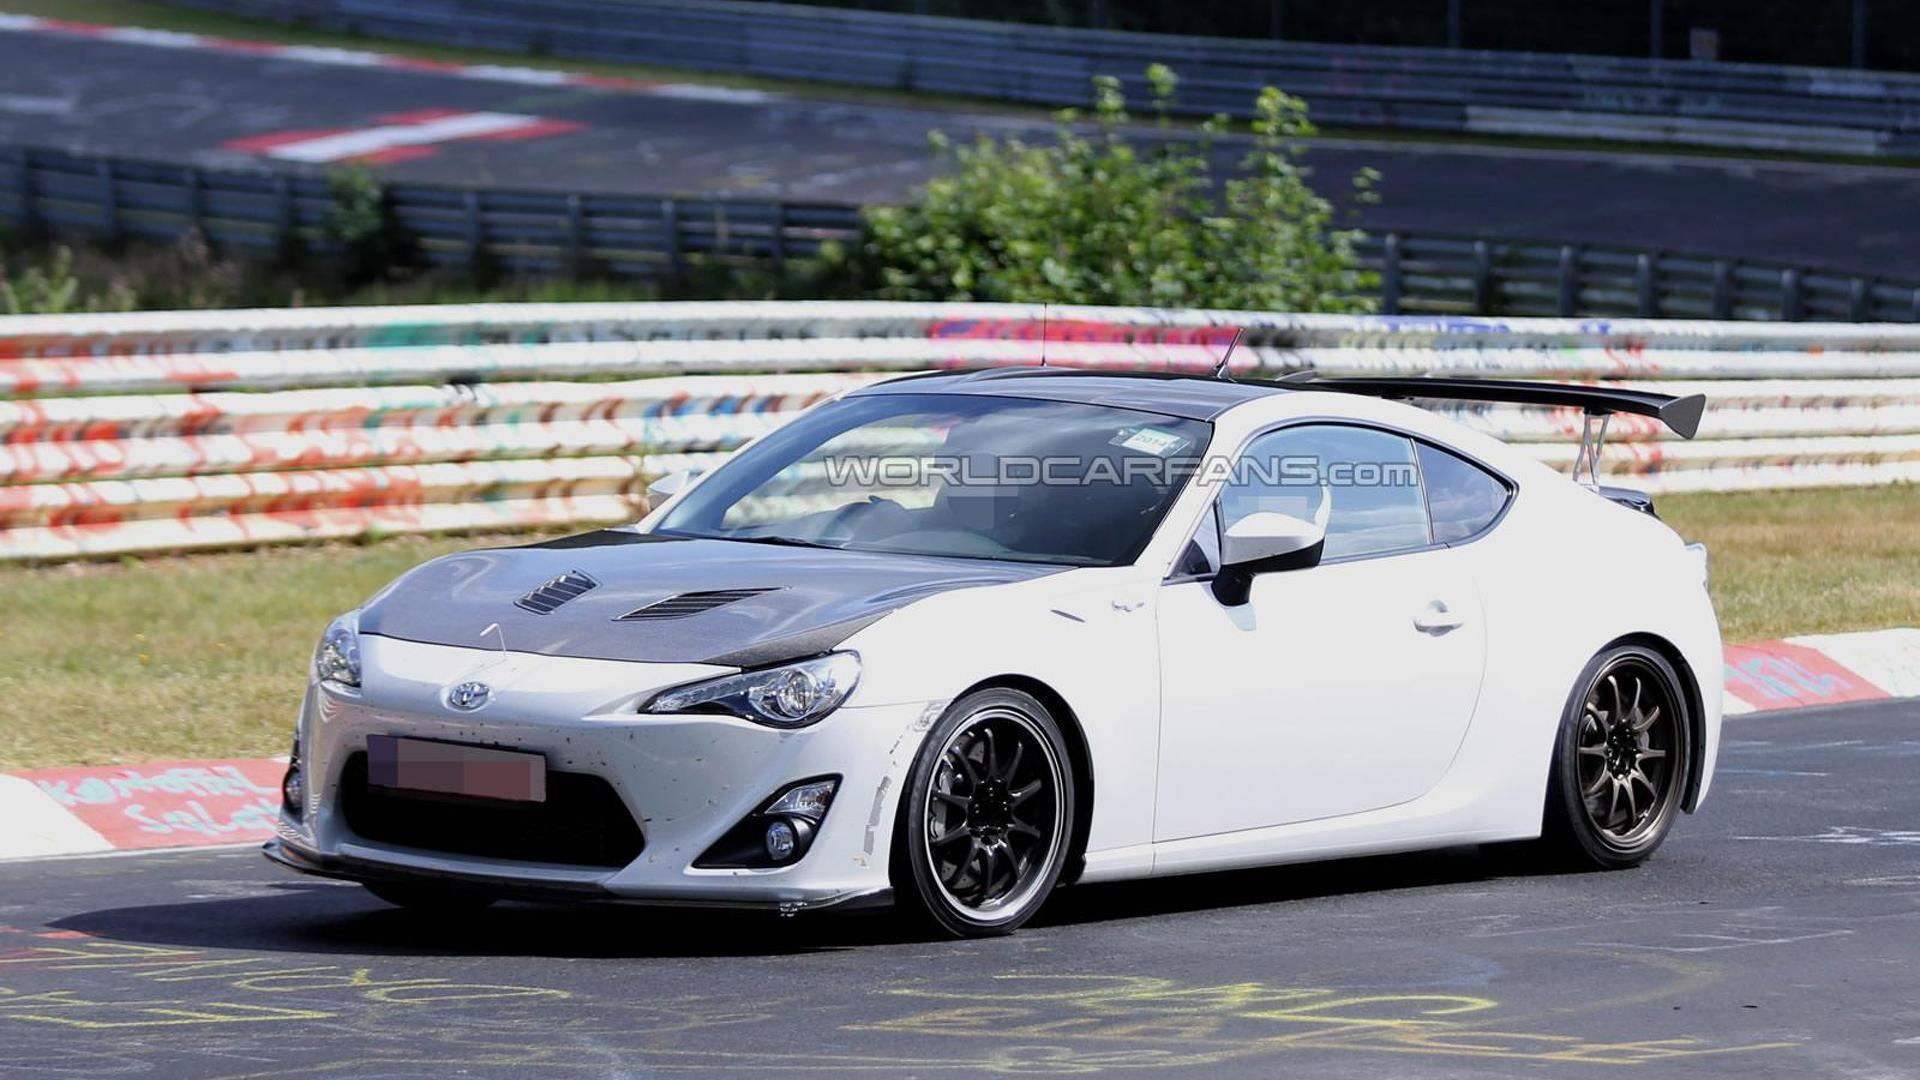 Mysterious 2015 Toyota GT 86 prototype spied at the 'Ring testing lightweight body parts